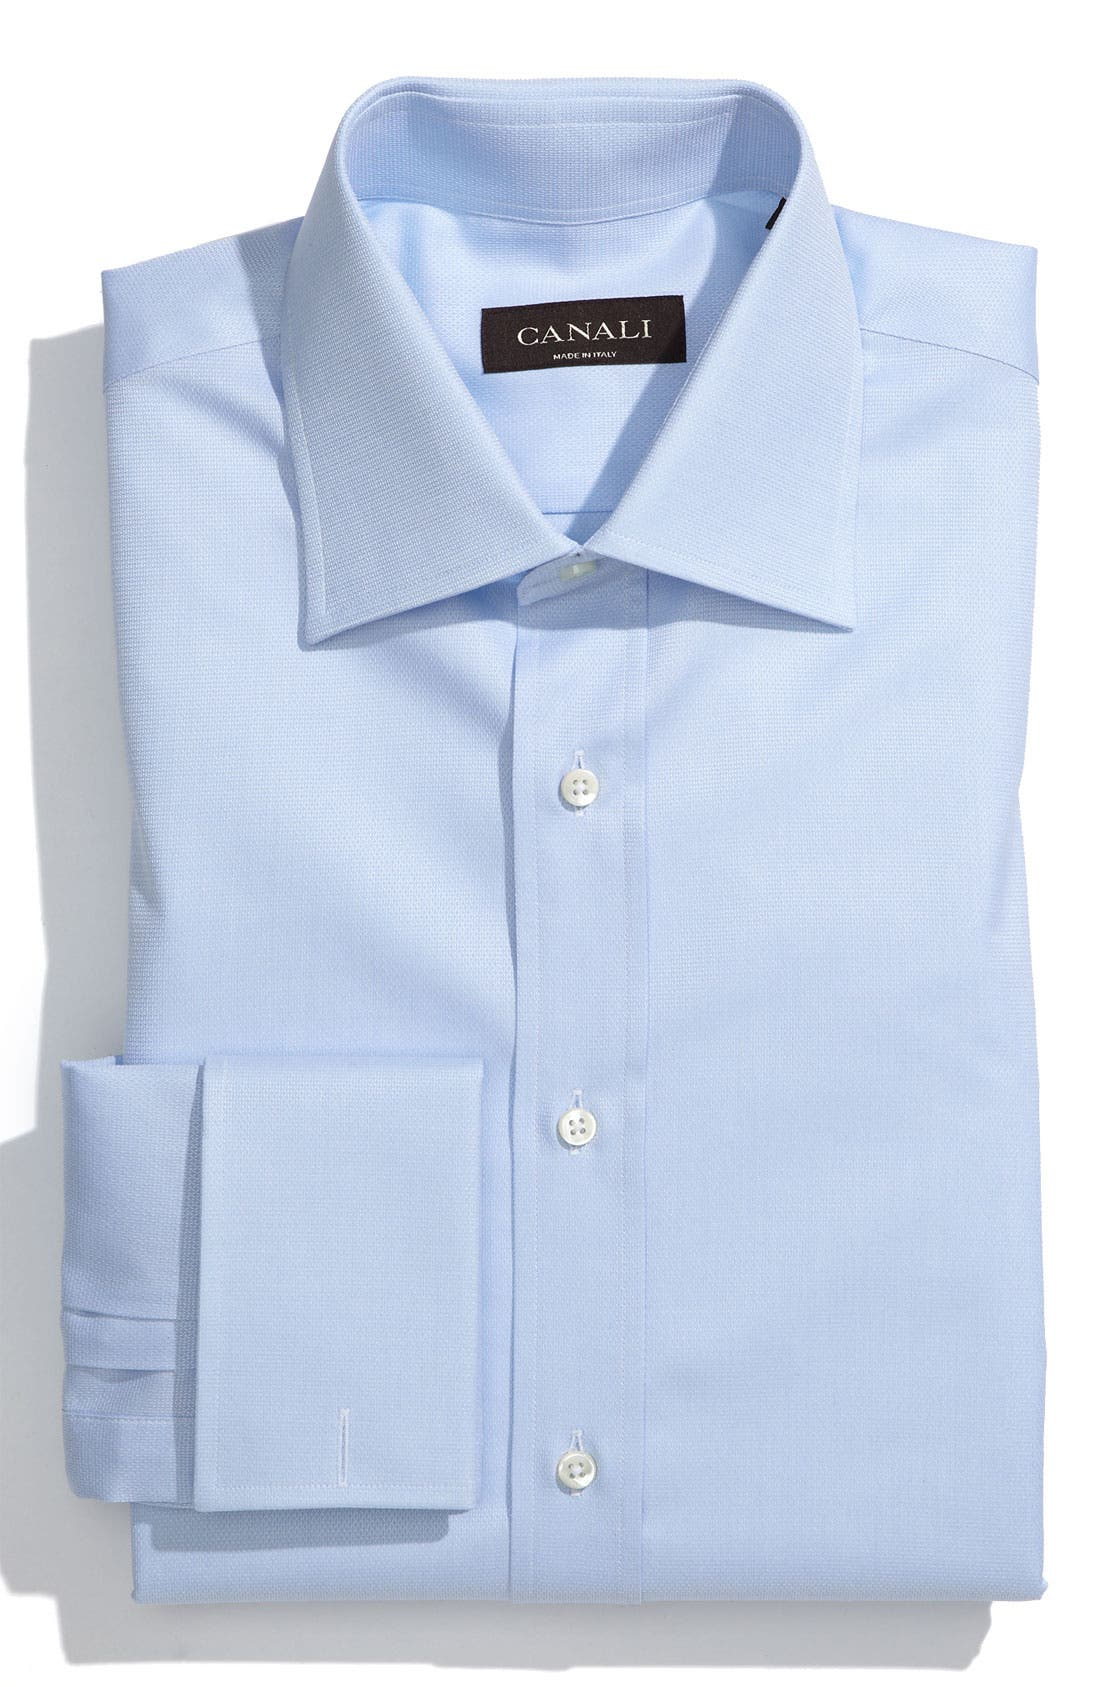 Main Image - Canali Regular Fit Dress Shirt